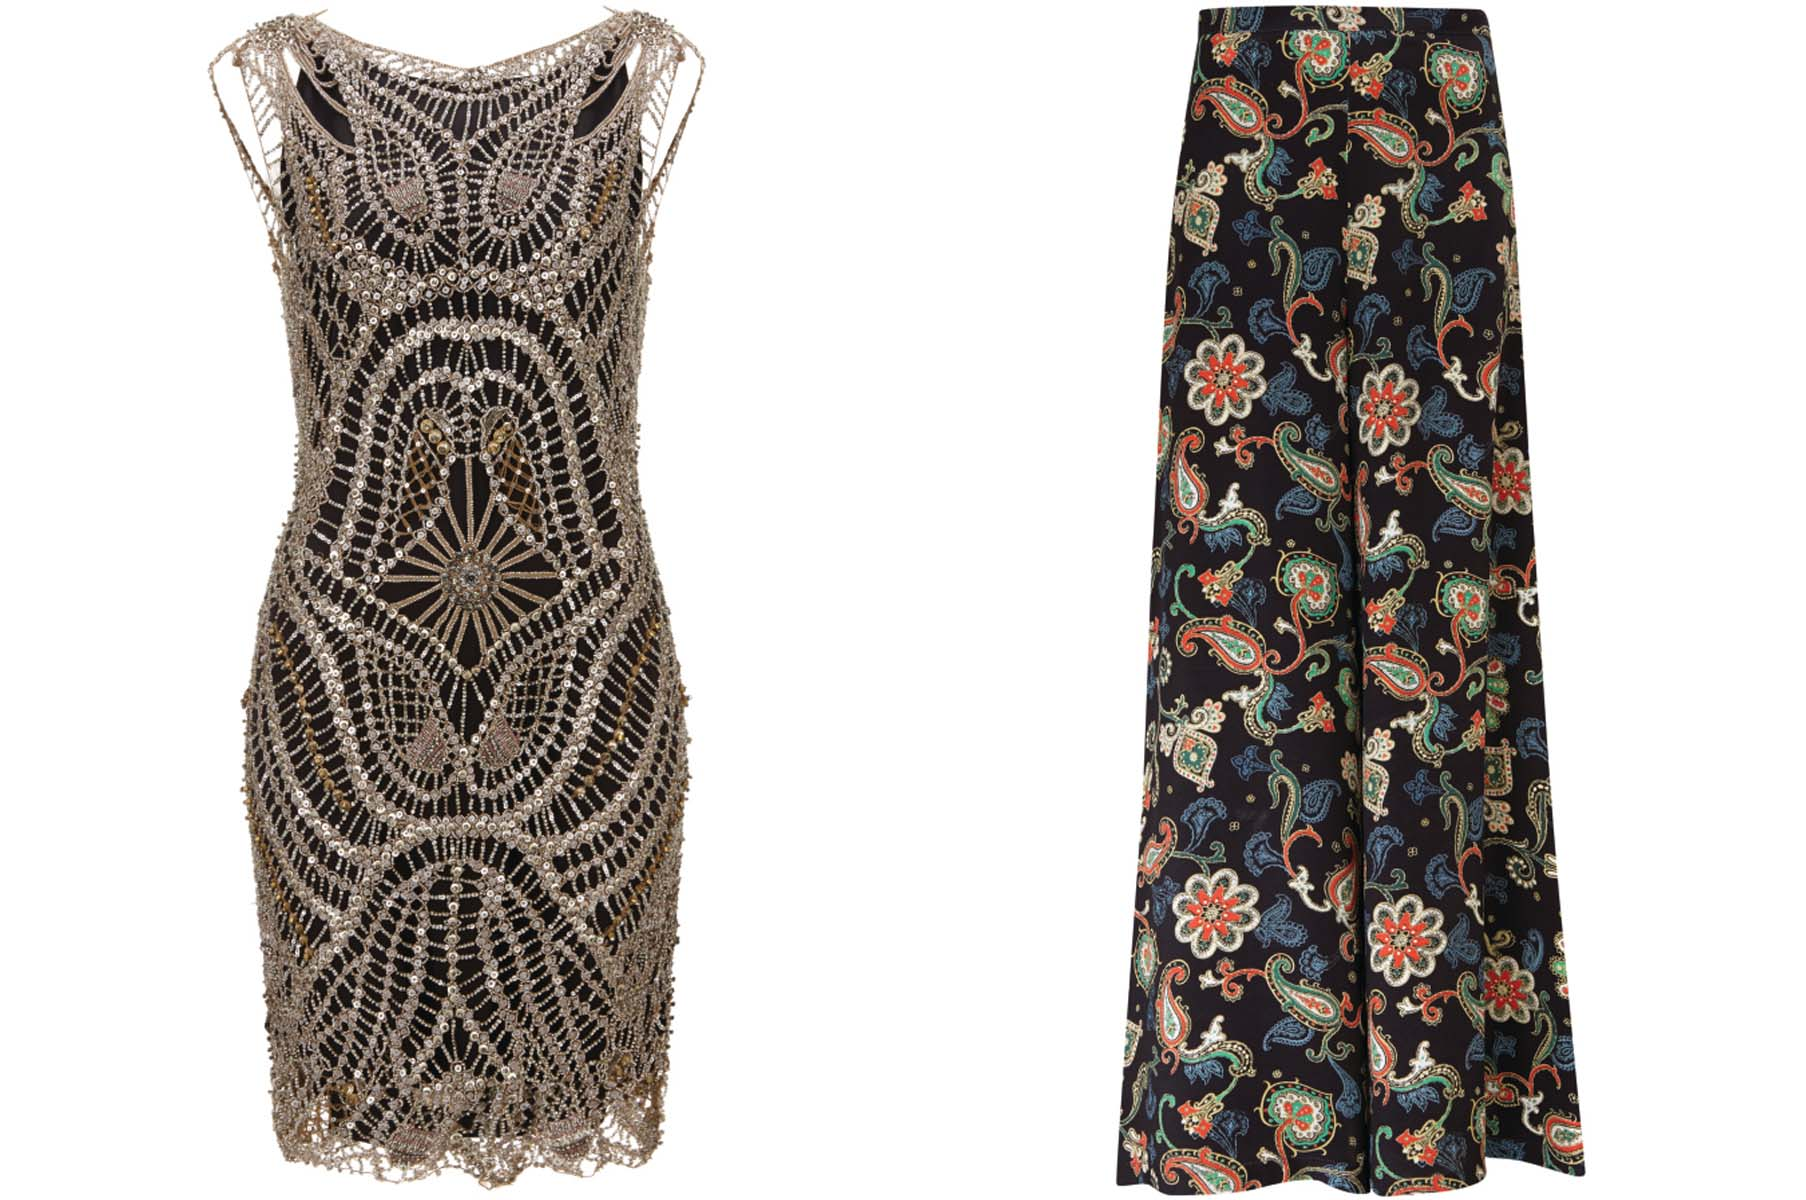 Kate Moss for Topshop art deco shift dress (left) and flare pants. (Photos: New York Observer)